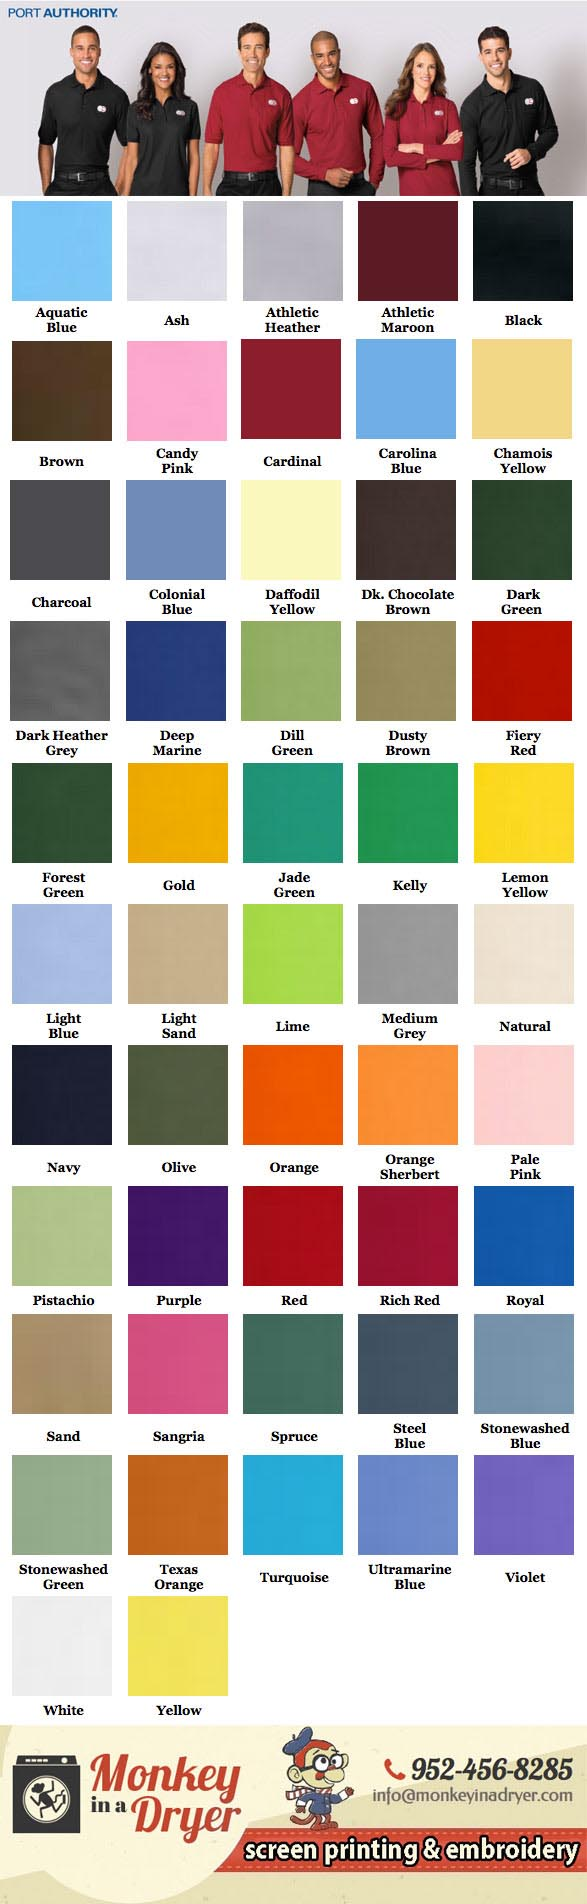 Port Authority Swatch Color Chart